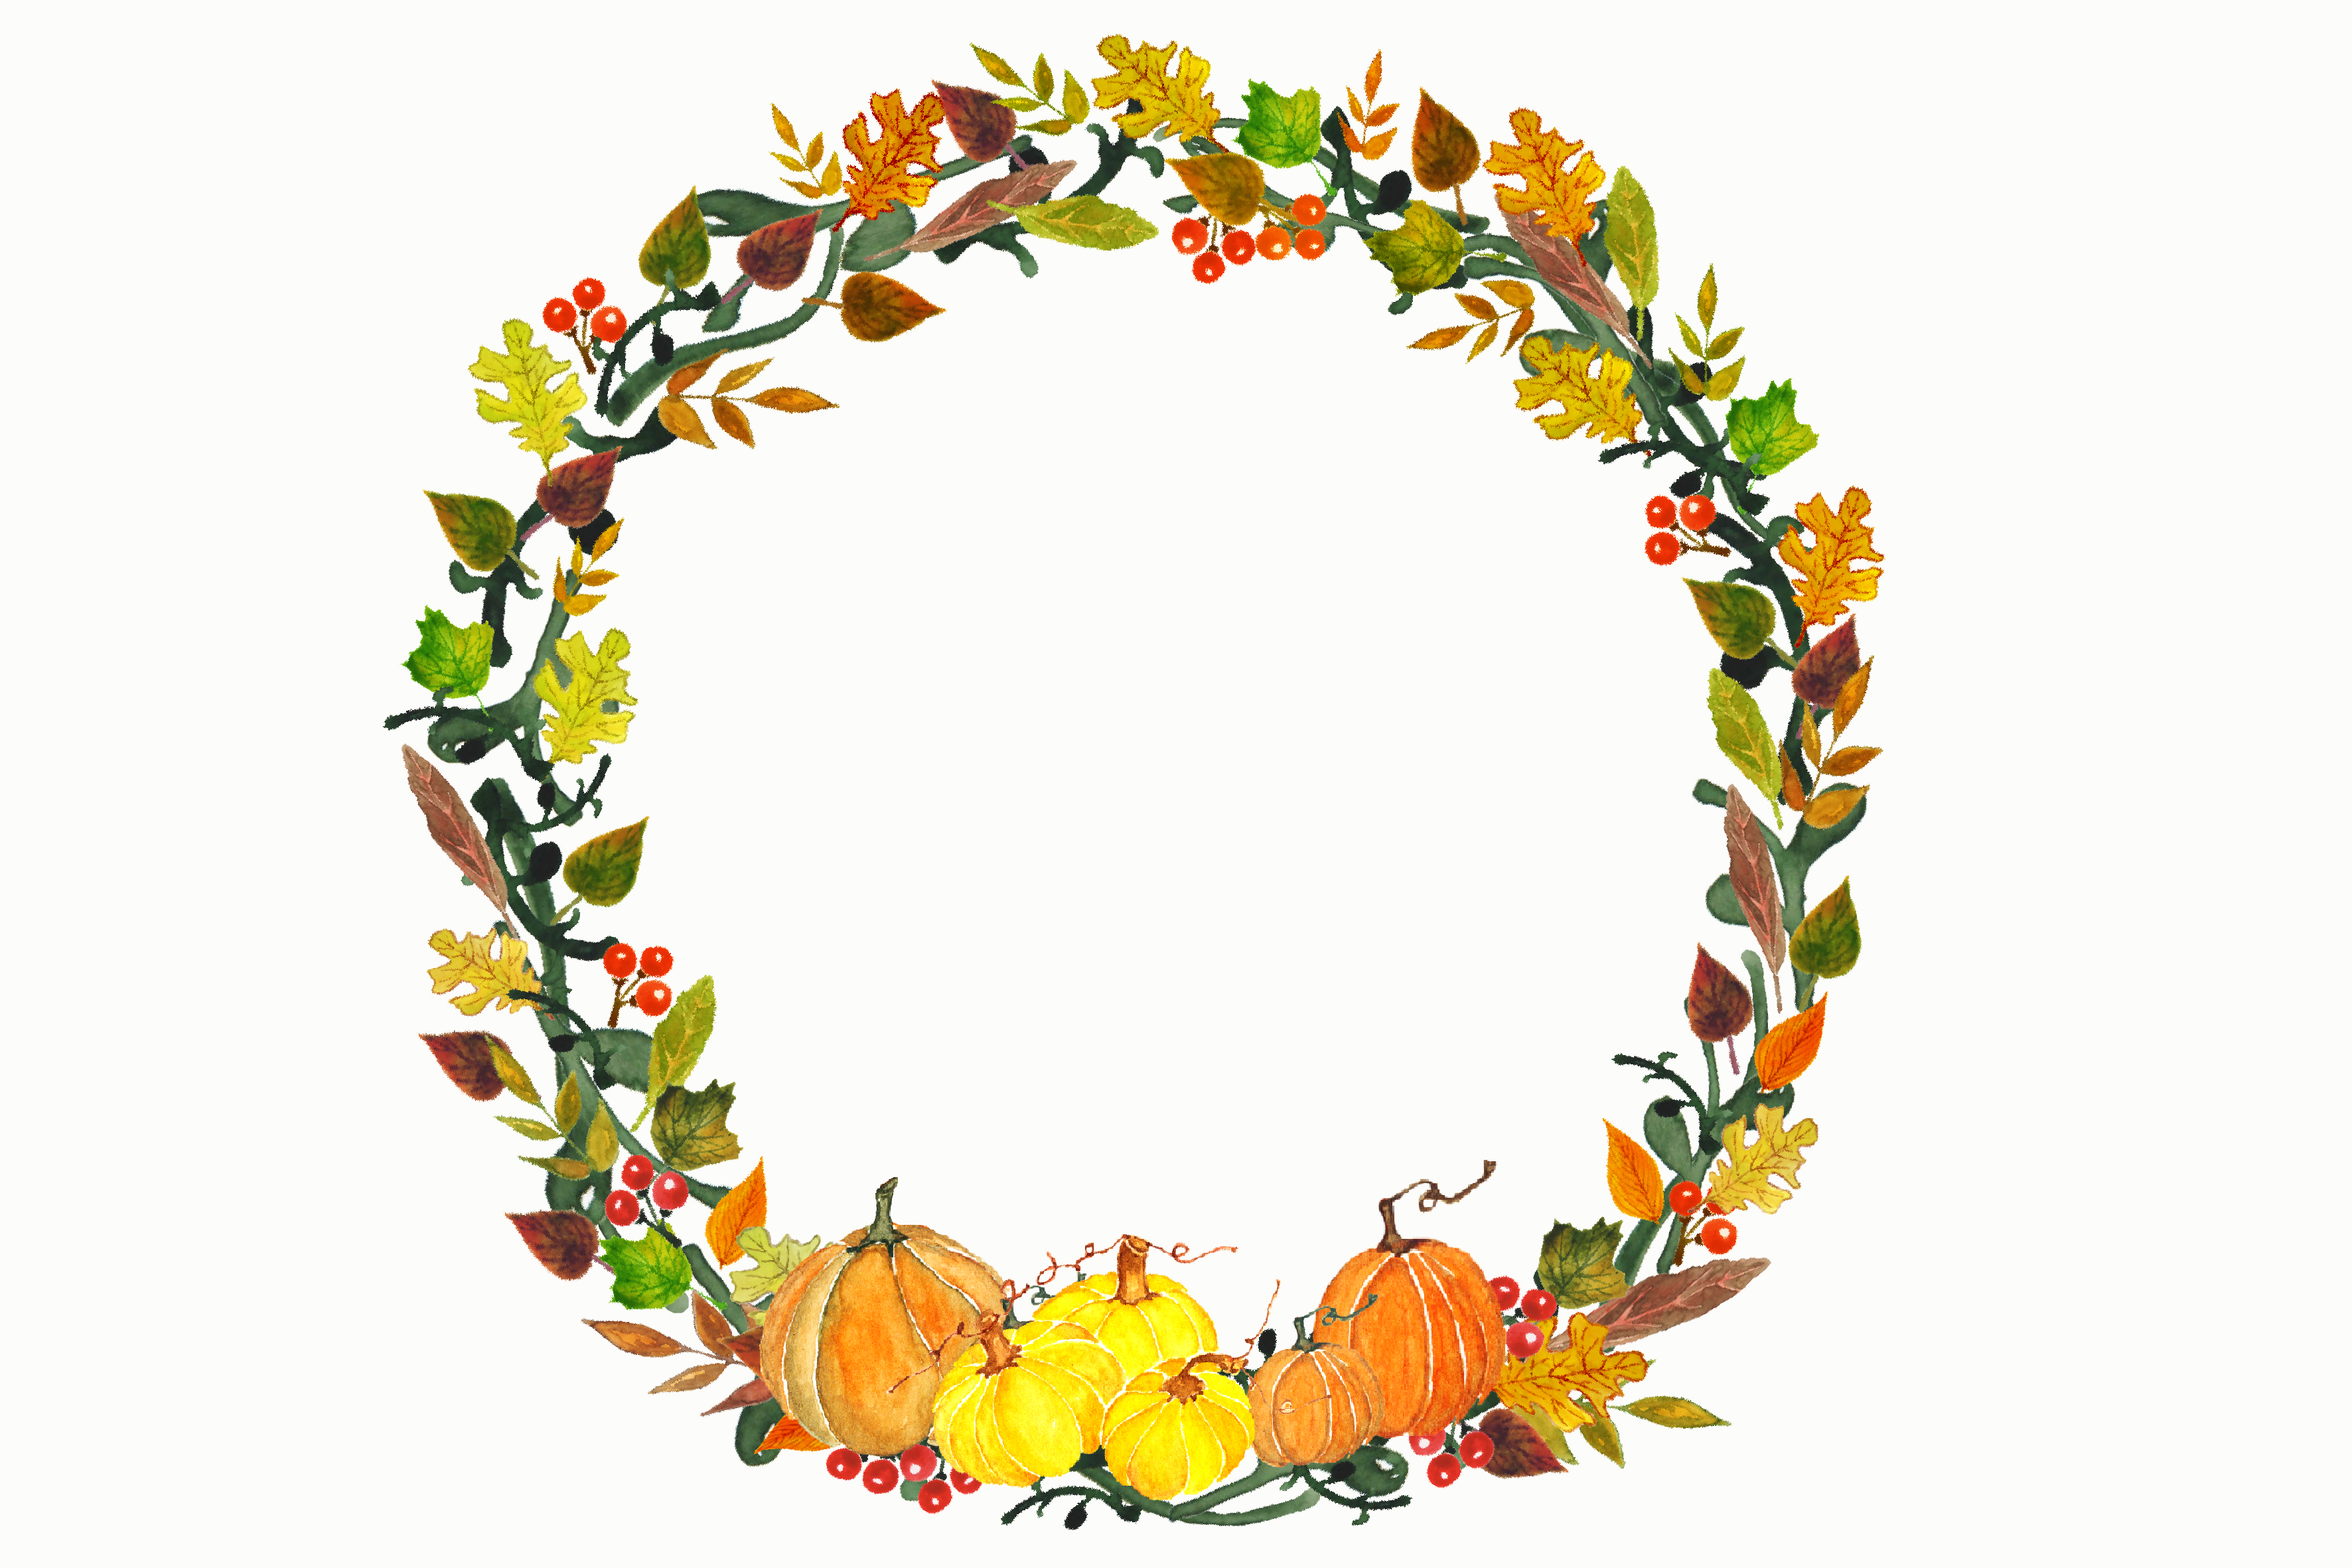 png library download Free wreaths cliparts download. Fall wreath clipart